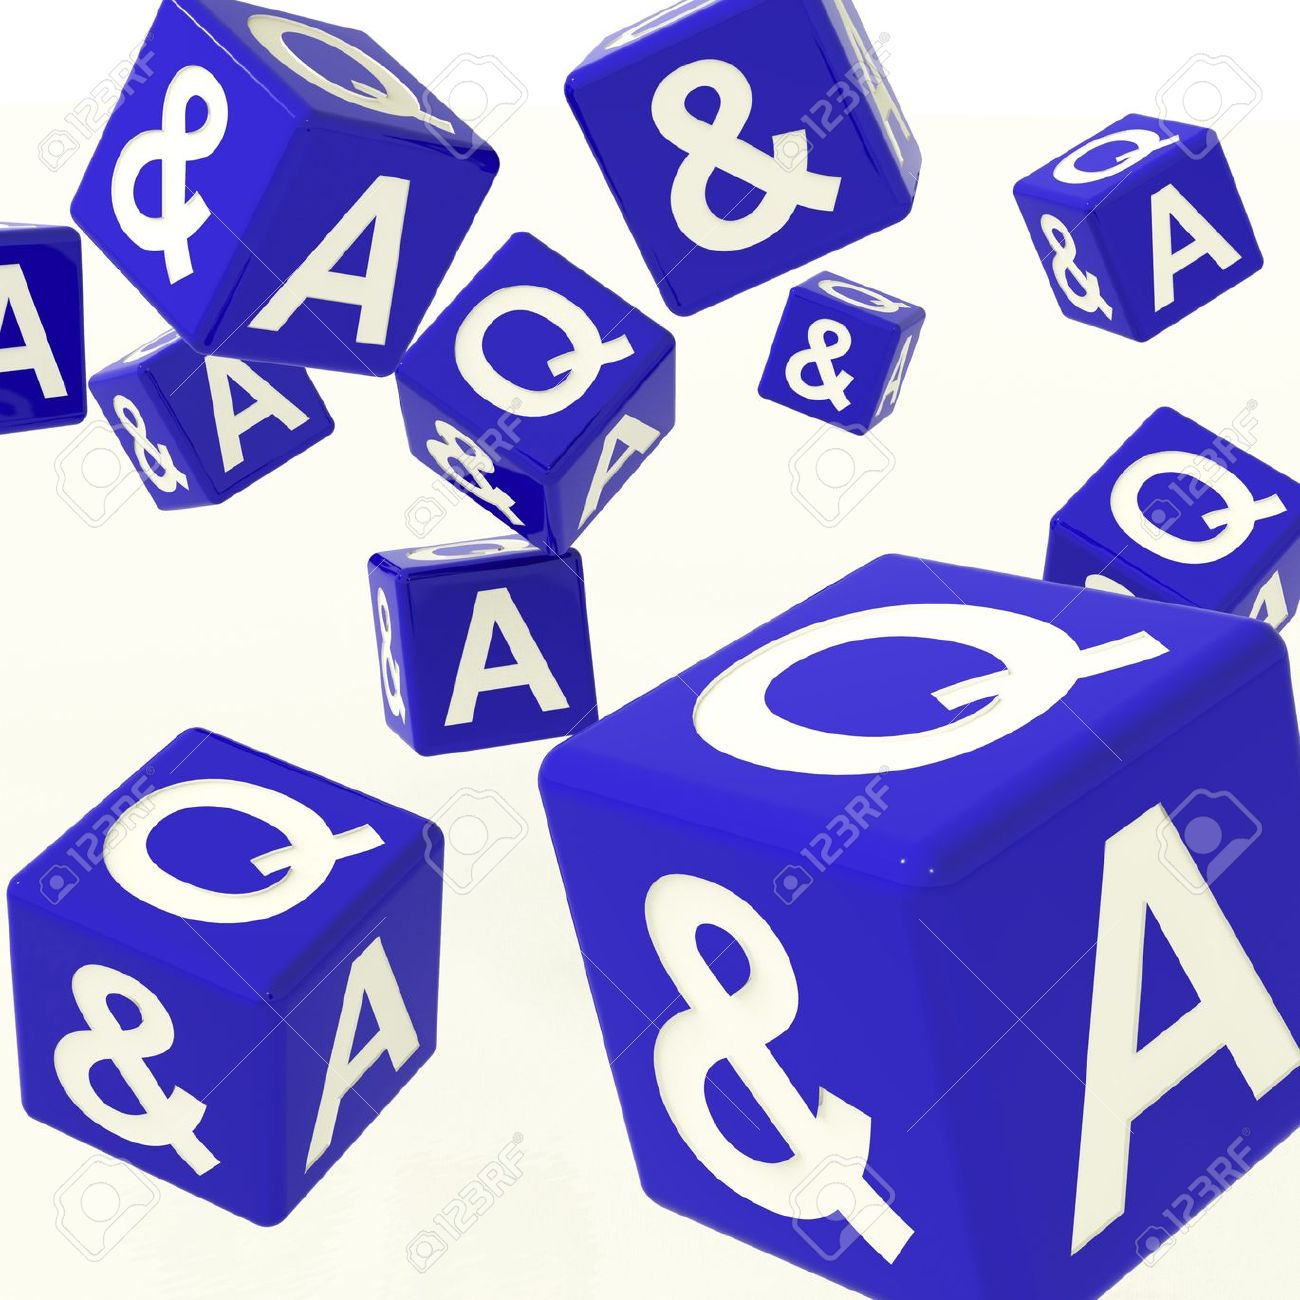 Dice clipart purple Clipart Blue Free 3d Illustration